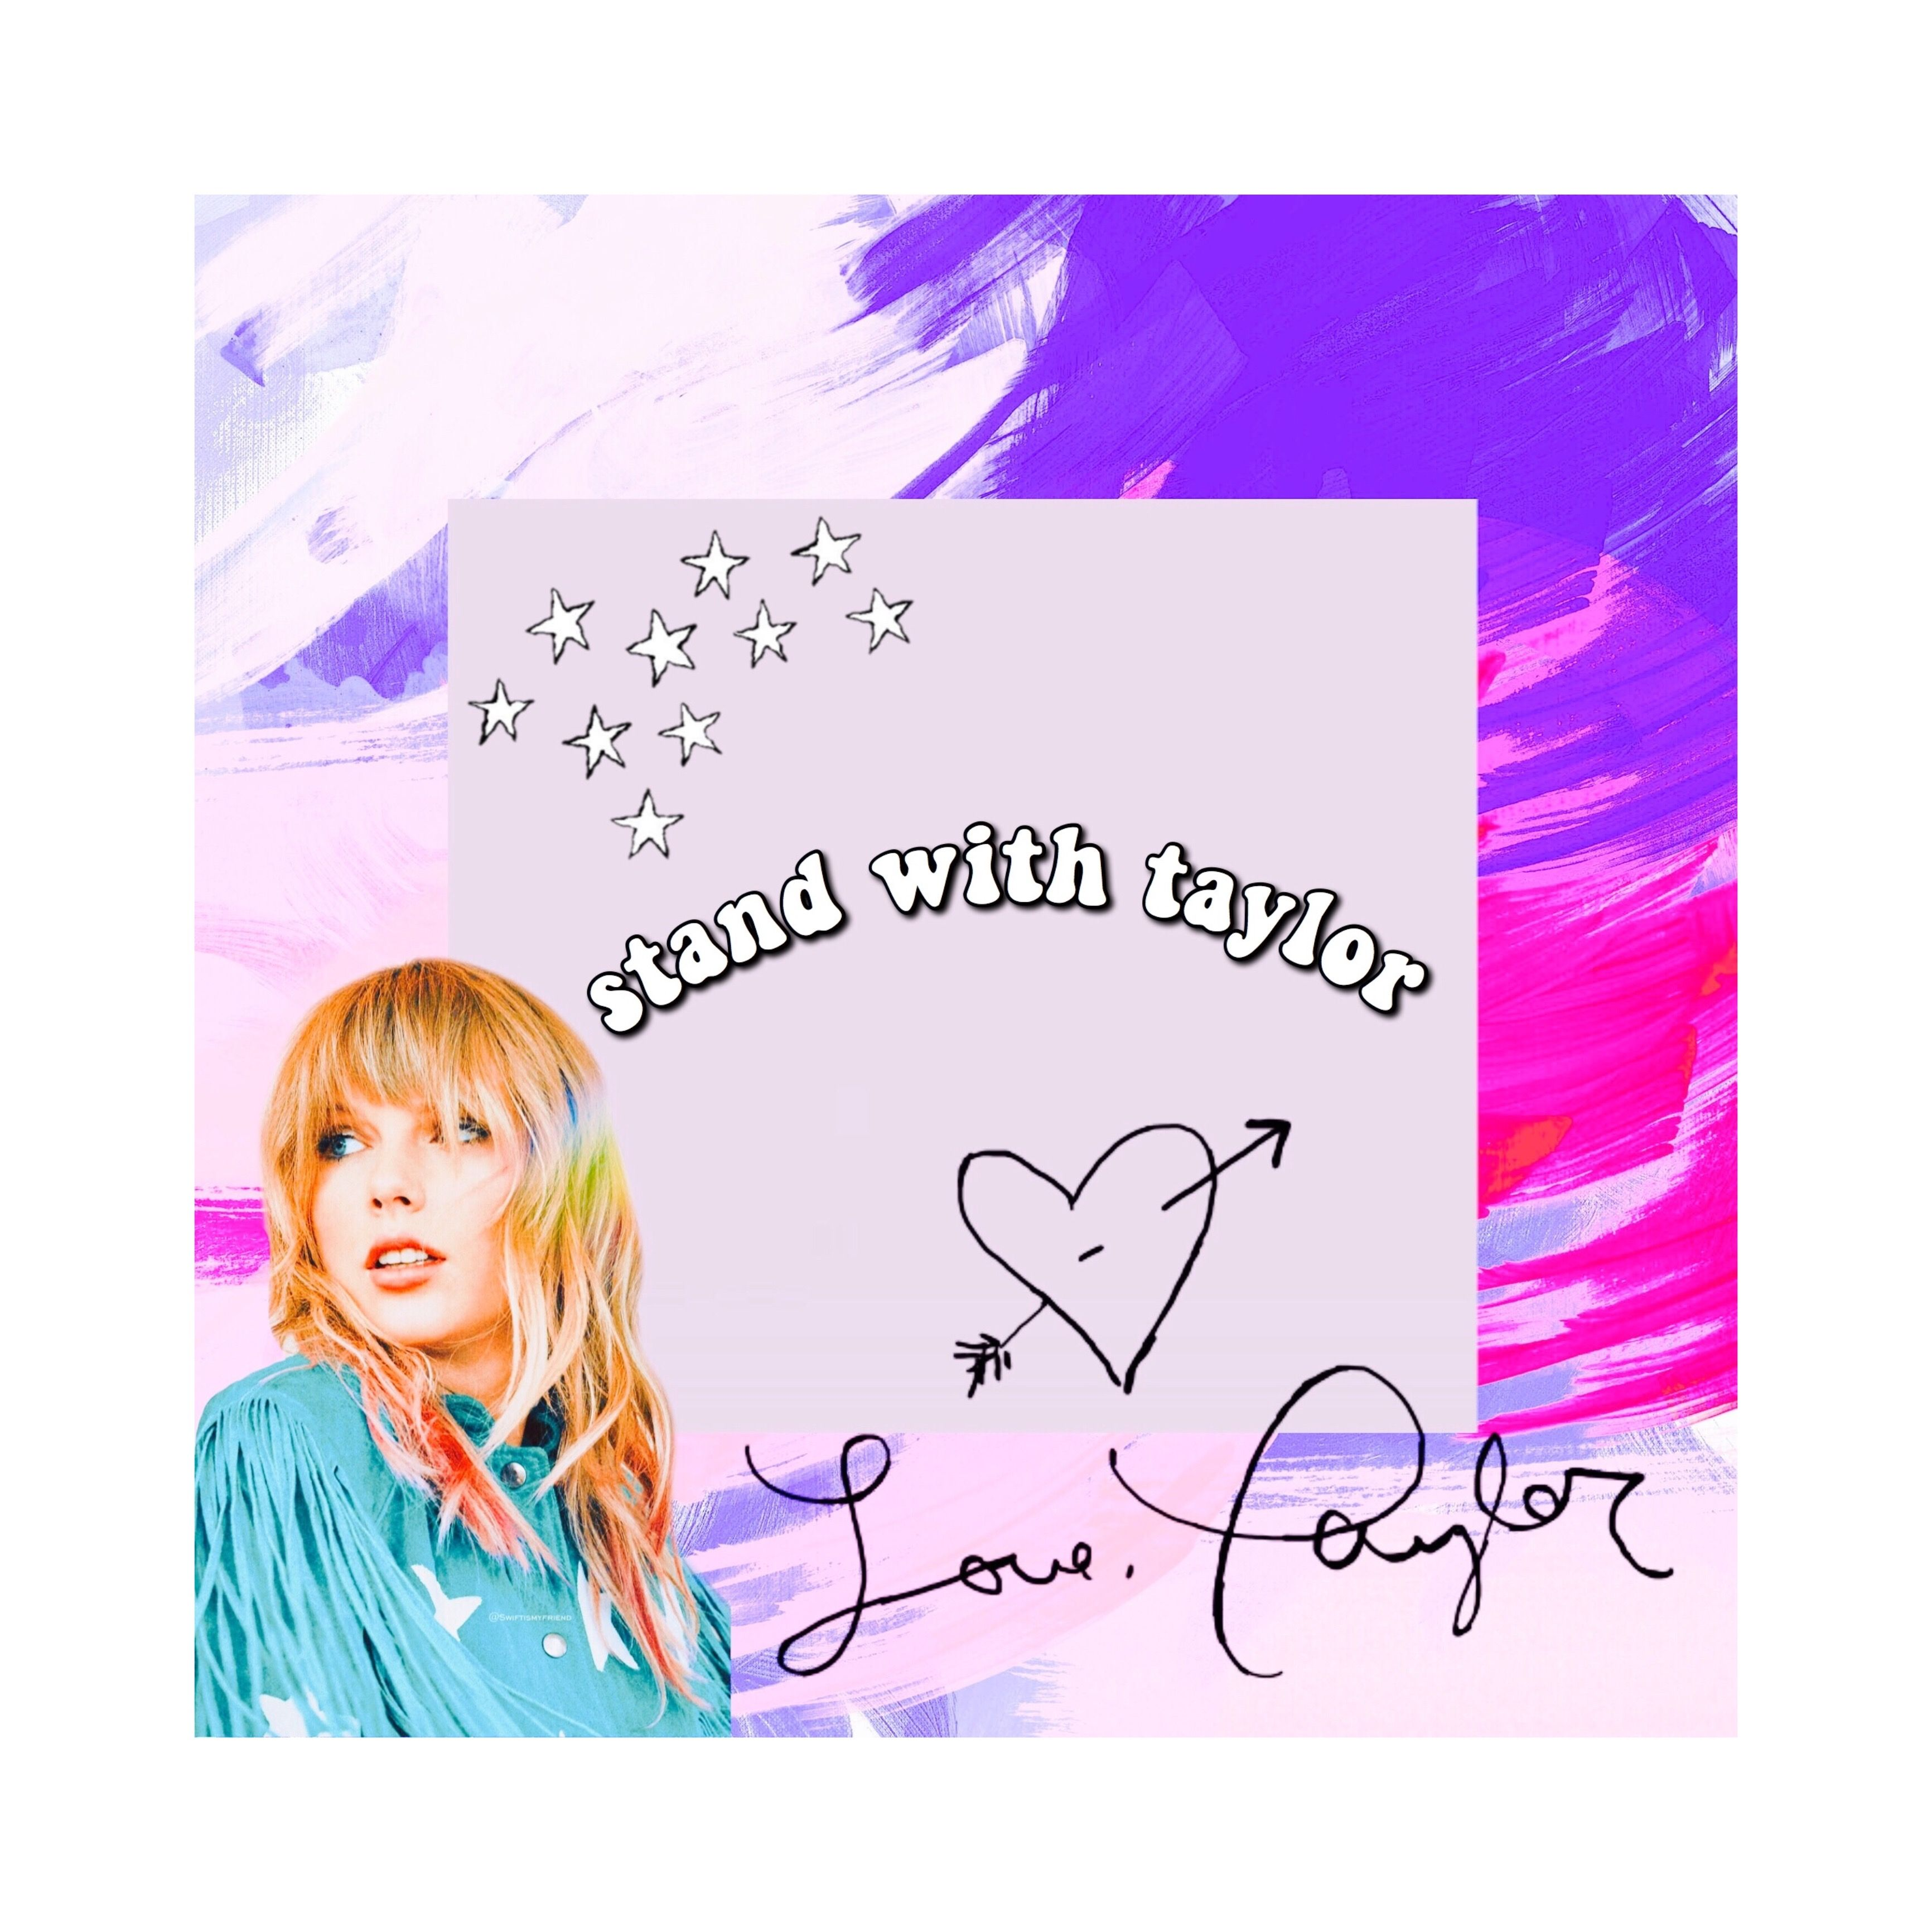 Stand With Tay ♡ image by 𝓂𝒶𝒹𝒹𝒾ℯ Taylor alison swift